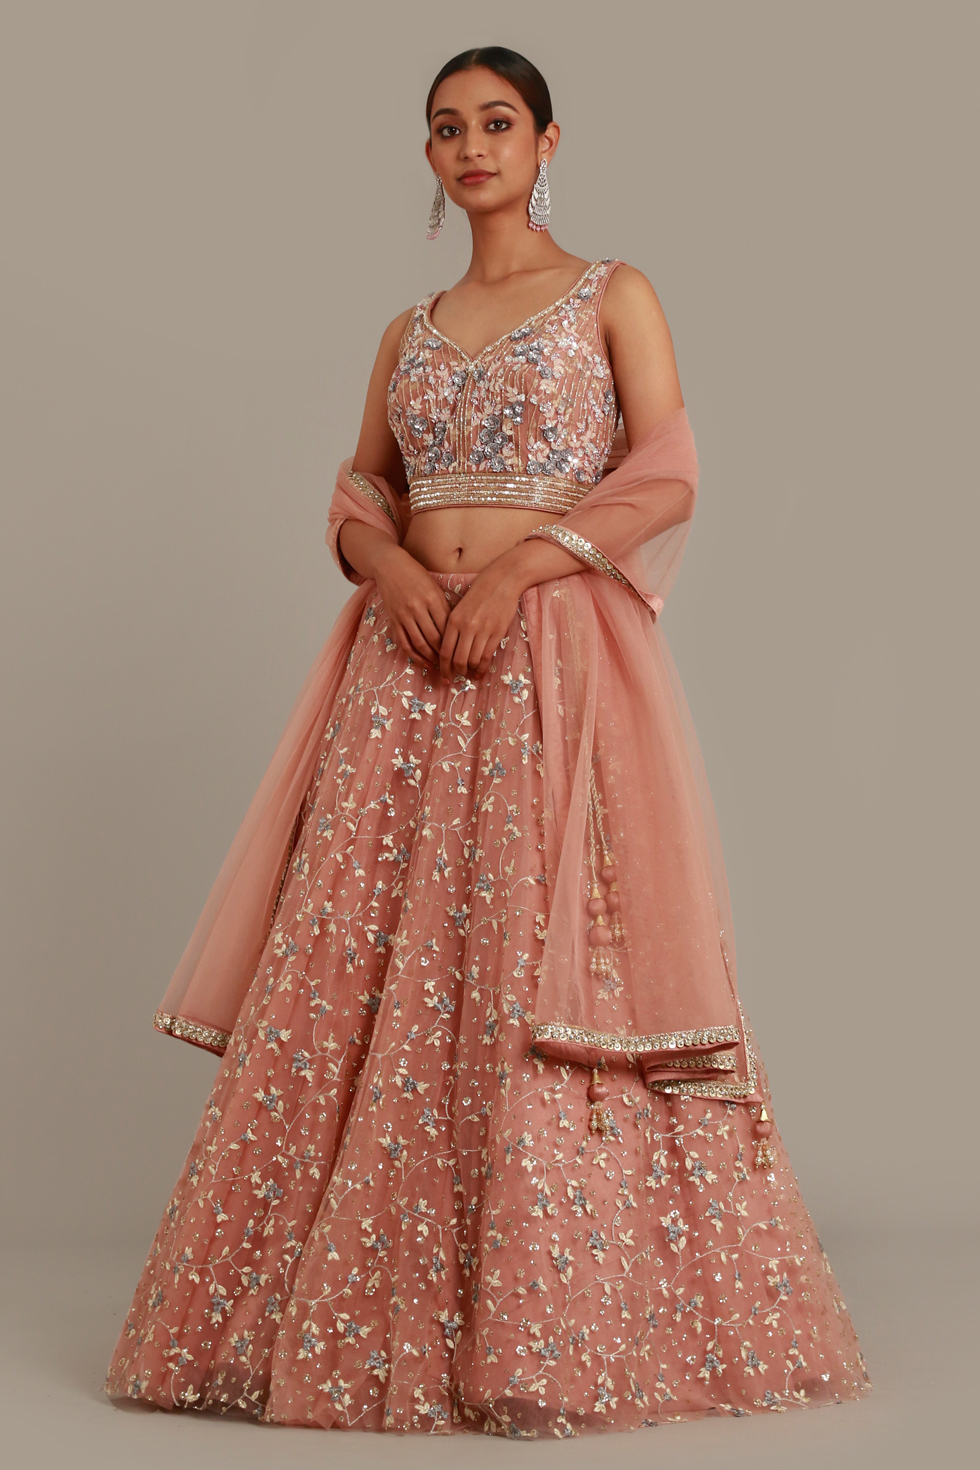 Pale Ice Pink Lehenga Set with Contrast Embroidery, Silver Details and Matching Dupatta